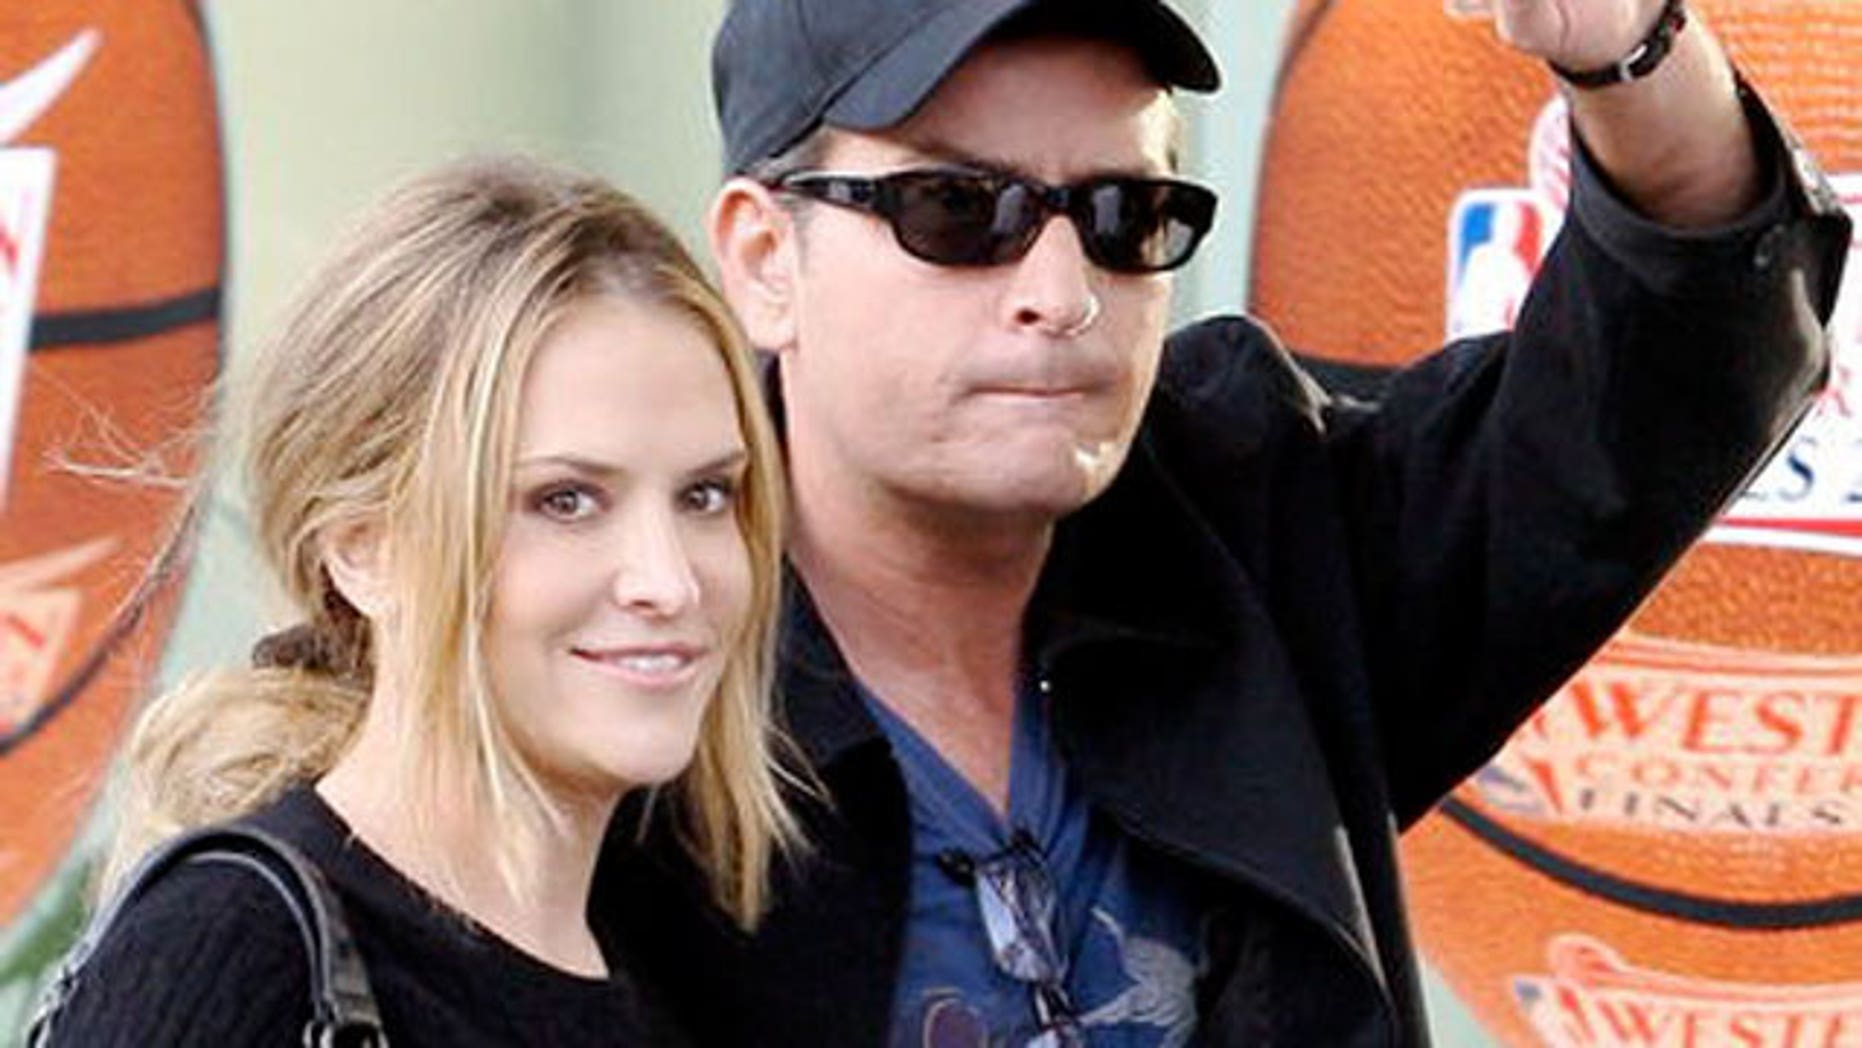 Addicted in Hollywood: Stars' Problems With Cocaine 'Still Going